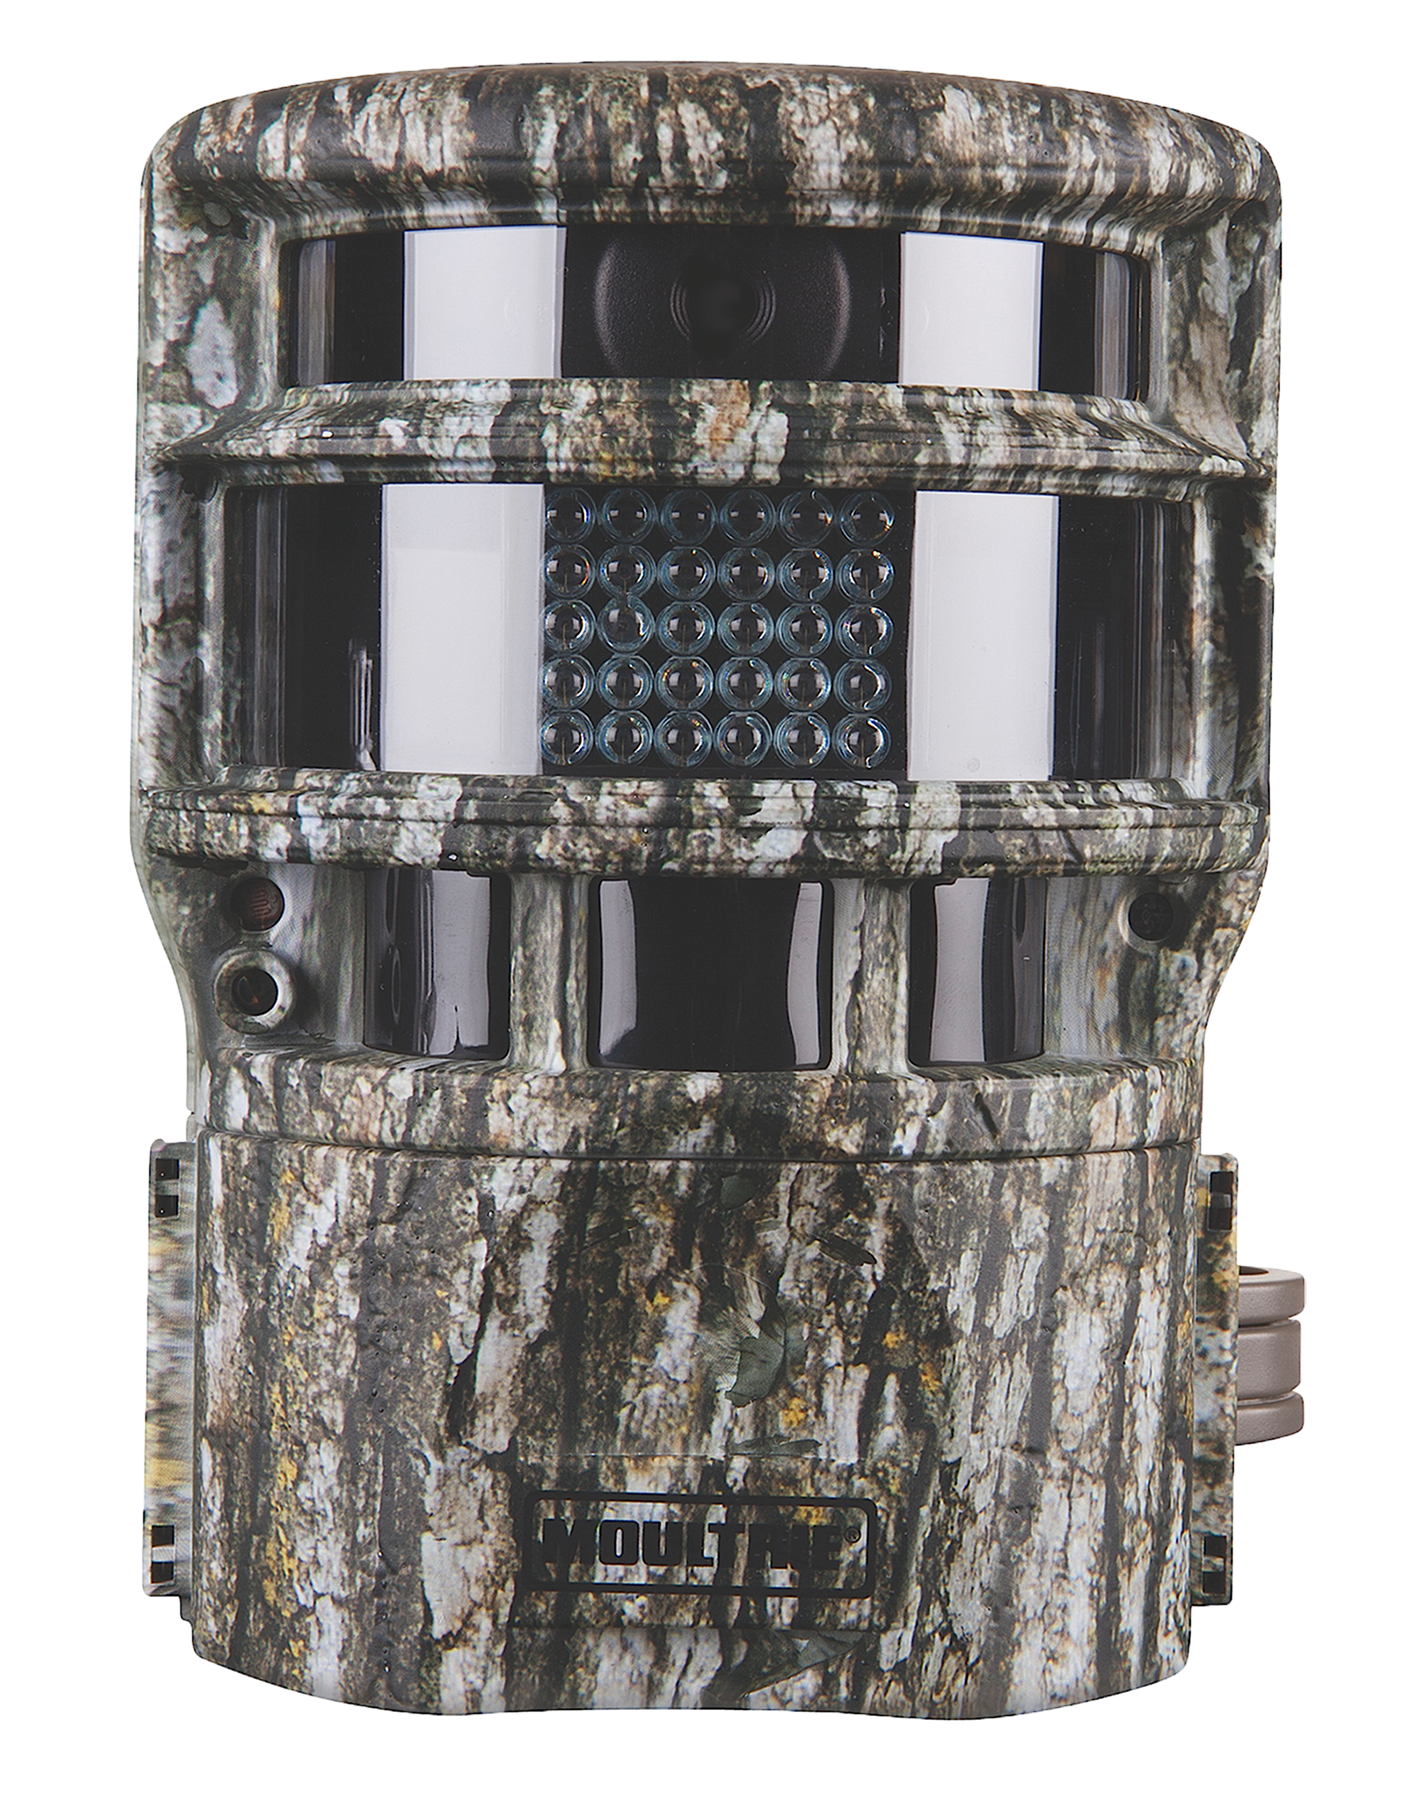 Moultrie MCG-12597 Panoramic 150 Camera 8 MP 6C-Cell Camo Infrared Flash